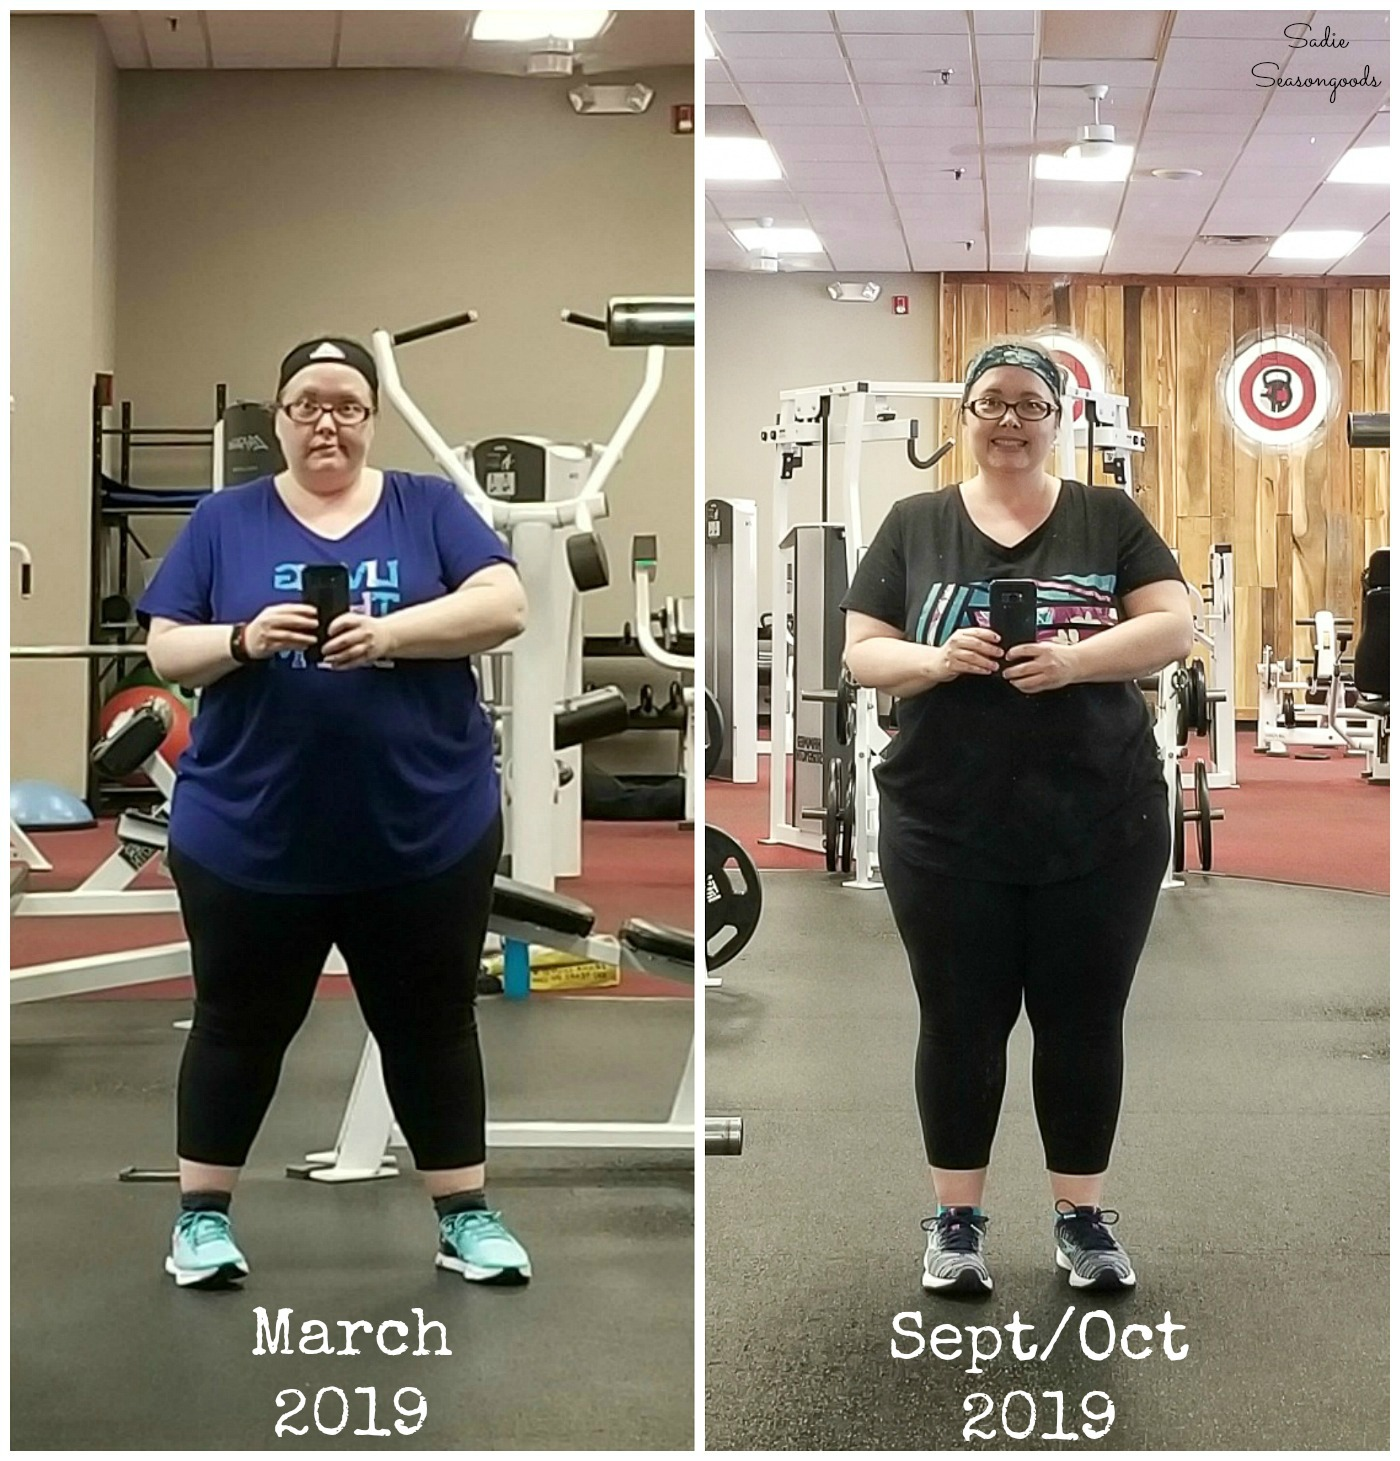 How I lost 20 pounds by doing cardio exercise on the elliptical machine and using the weight machines